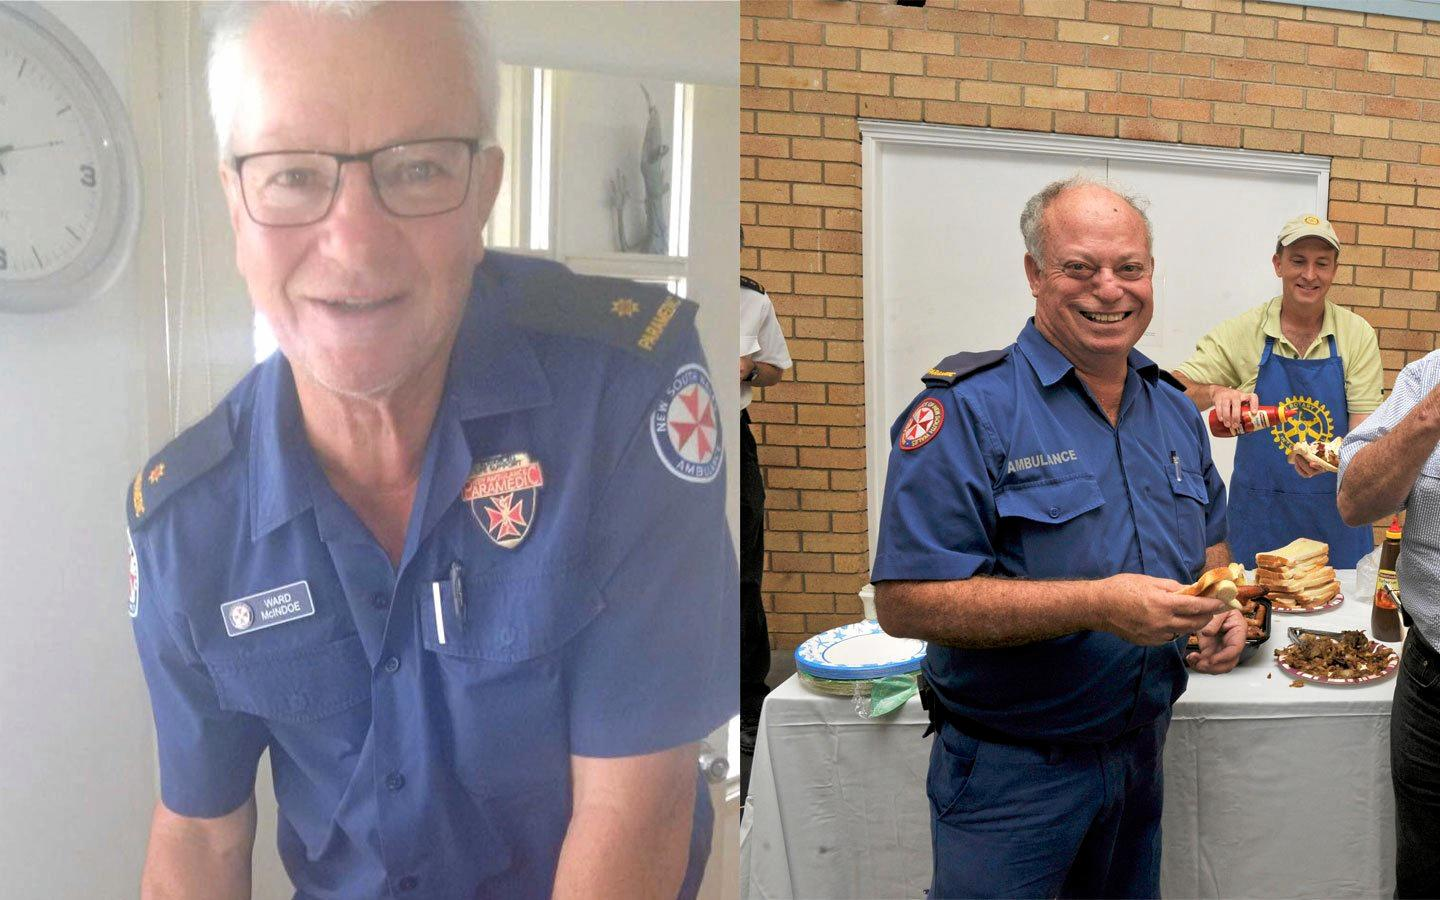 Recently retired paramedics Robert 'Ward' McIndoe (left) and Glenn Rice reflect on their extensive careers spanning a combined 85 years.